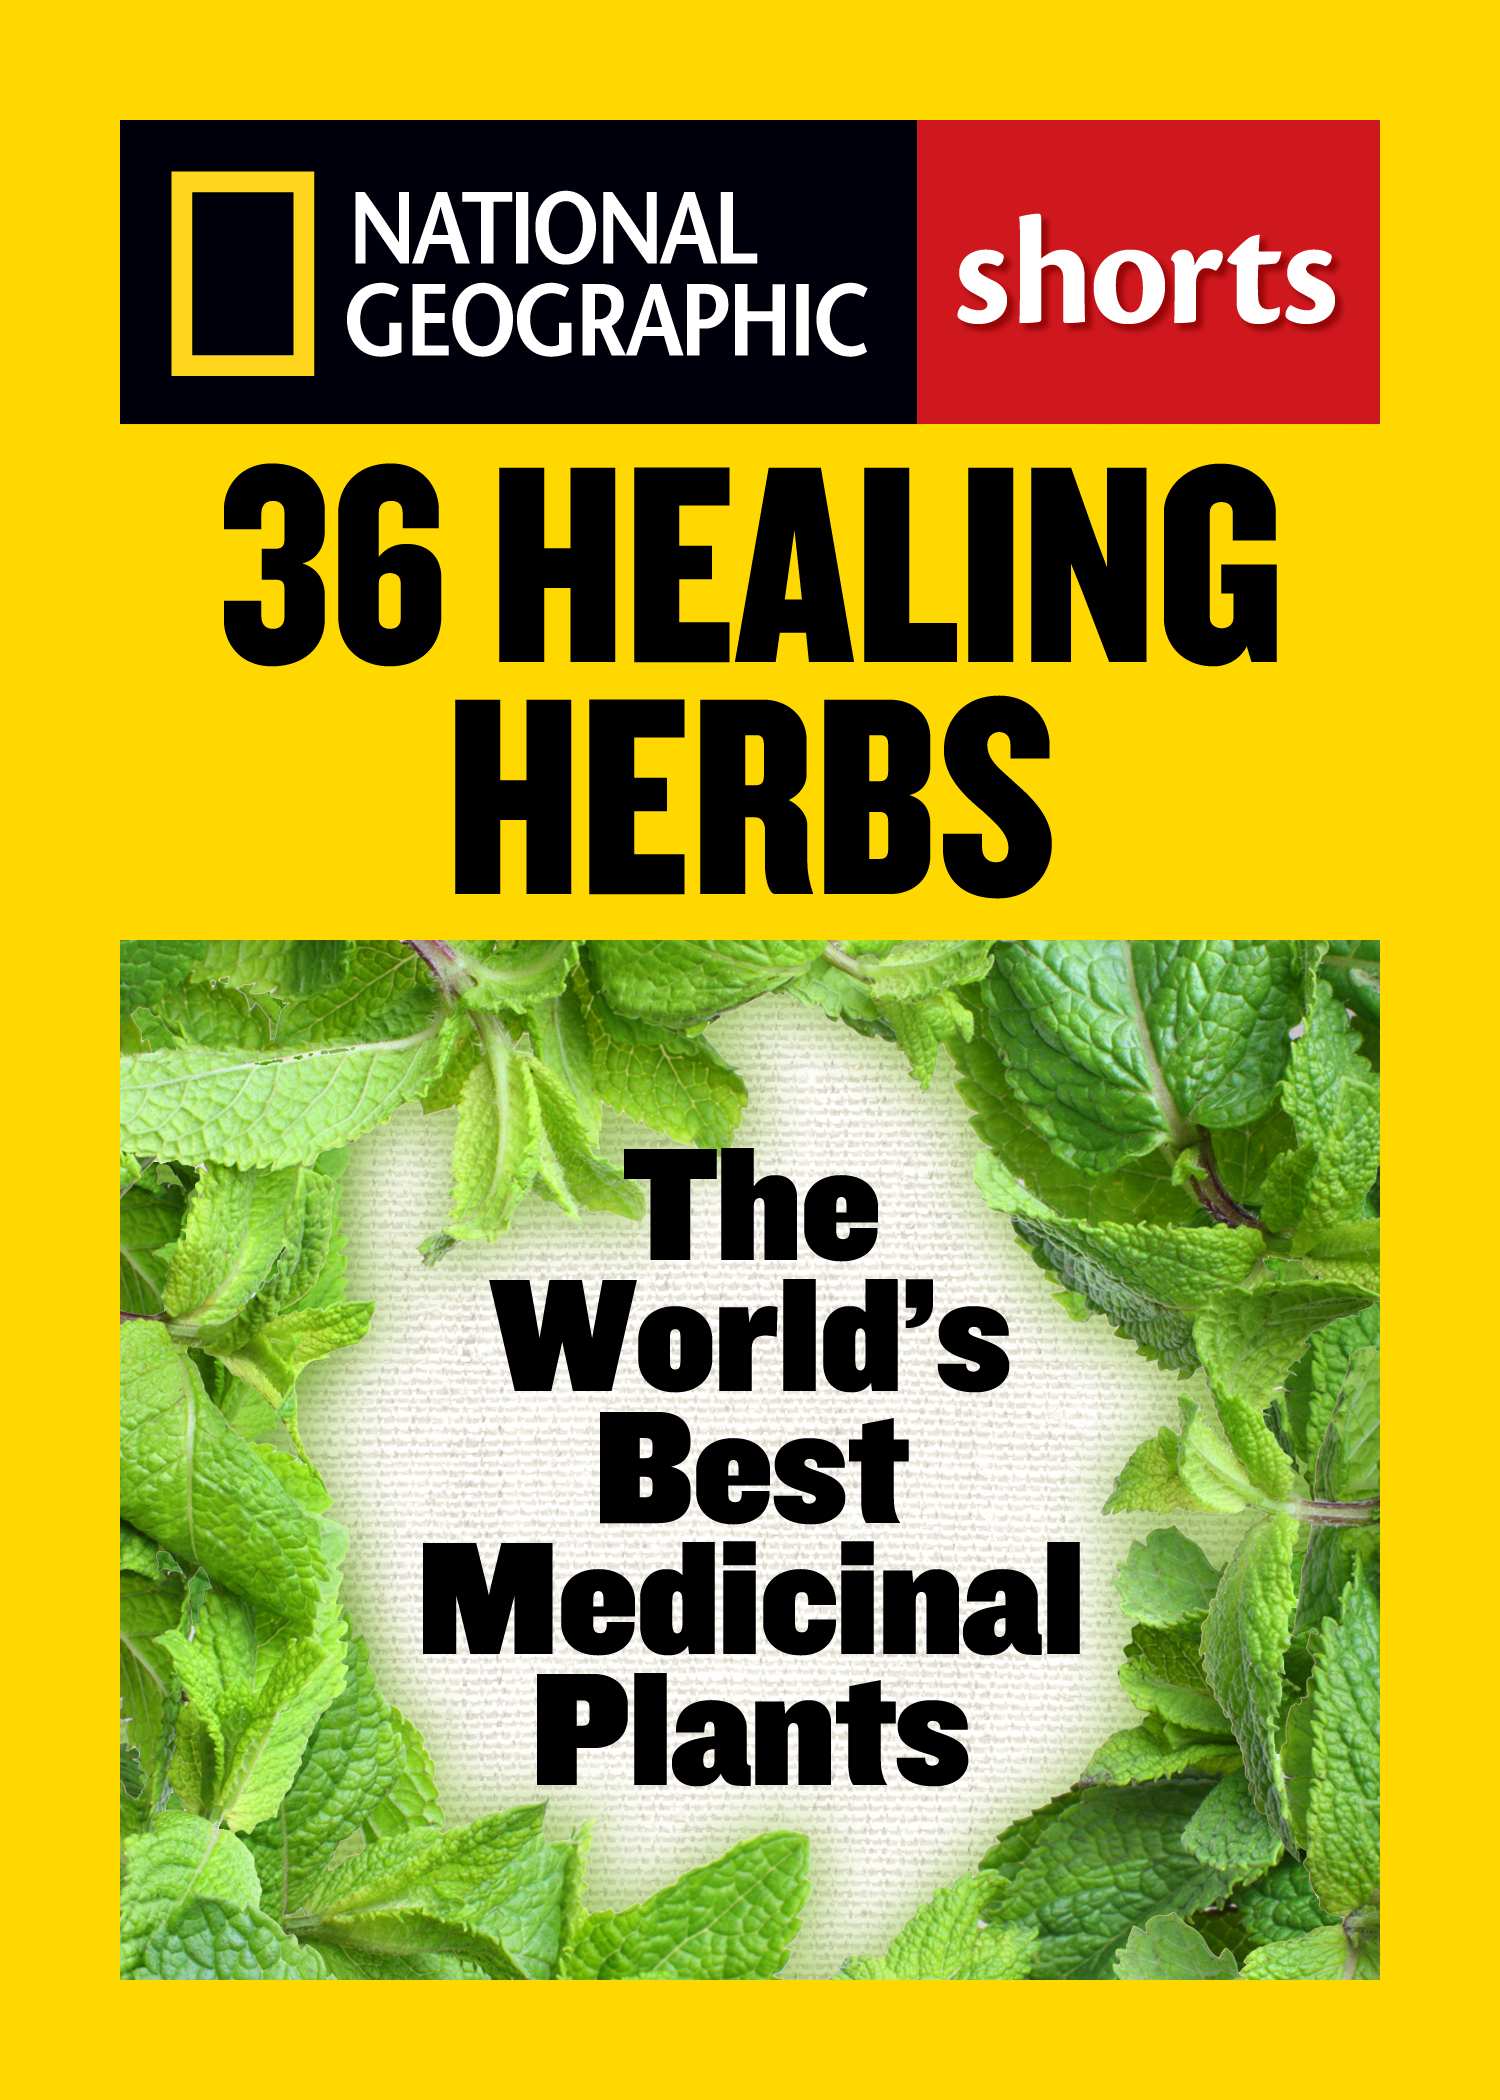 36 Healing Herbs The World's Best Medicinal Plants